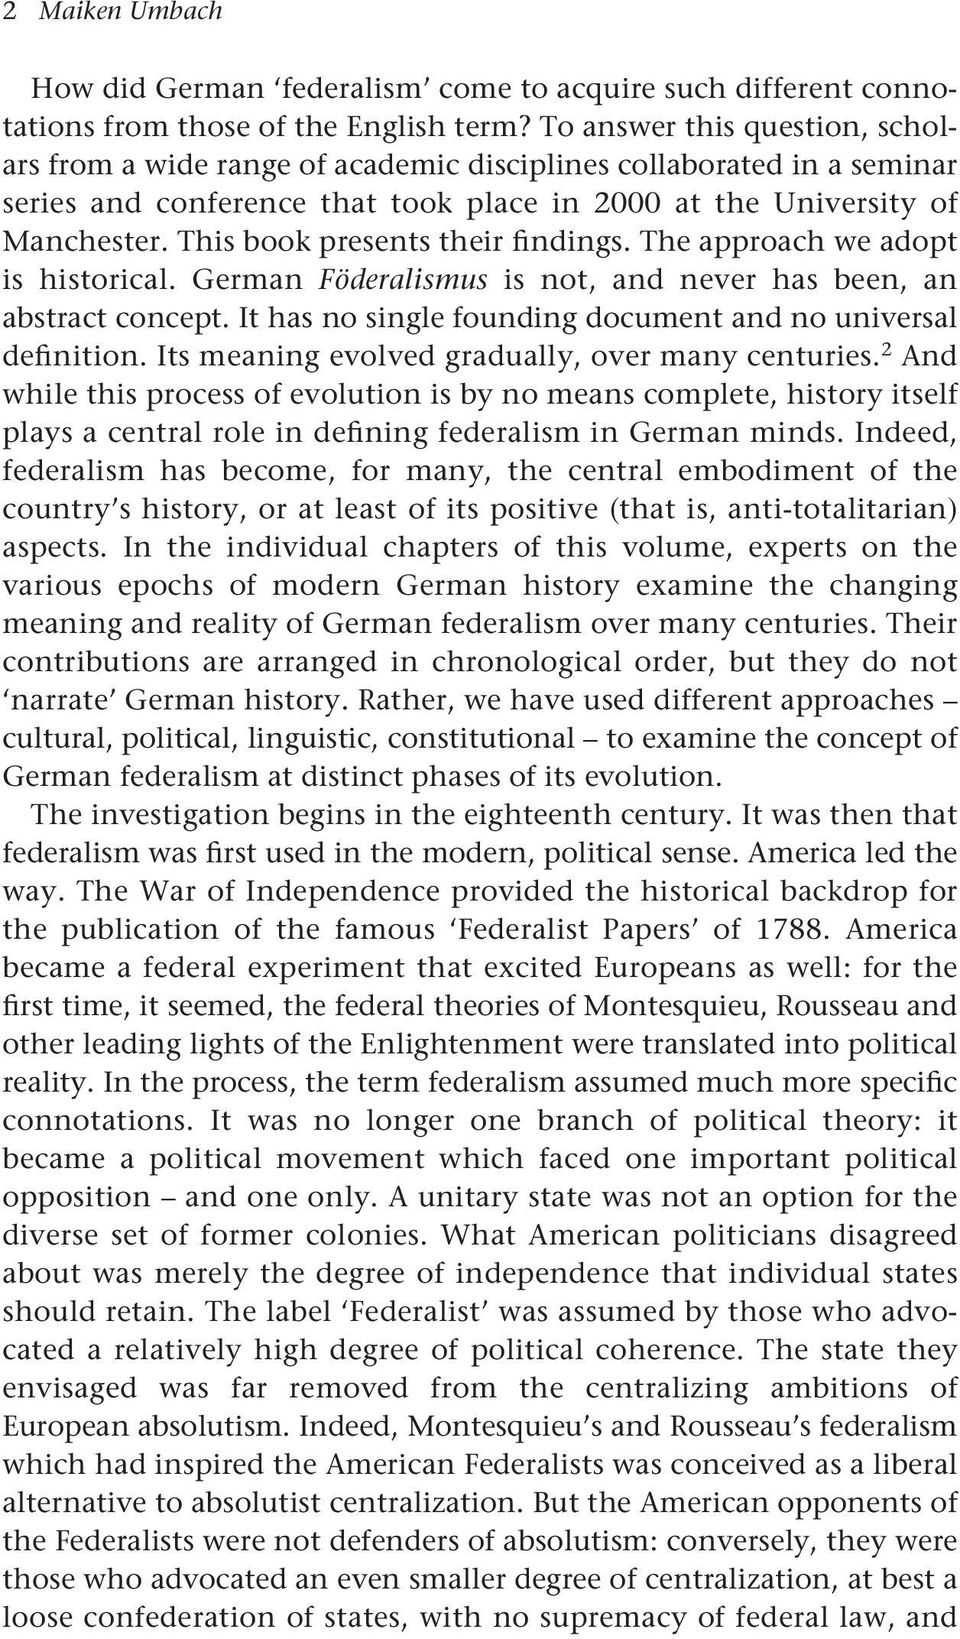 This book presents their findings. The approach we adopt is historical. German Föderalismus is not, and never has been, an abstract concept.